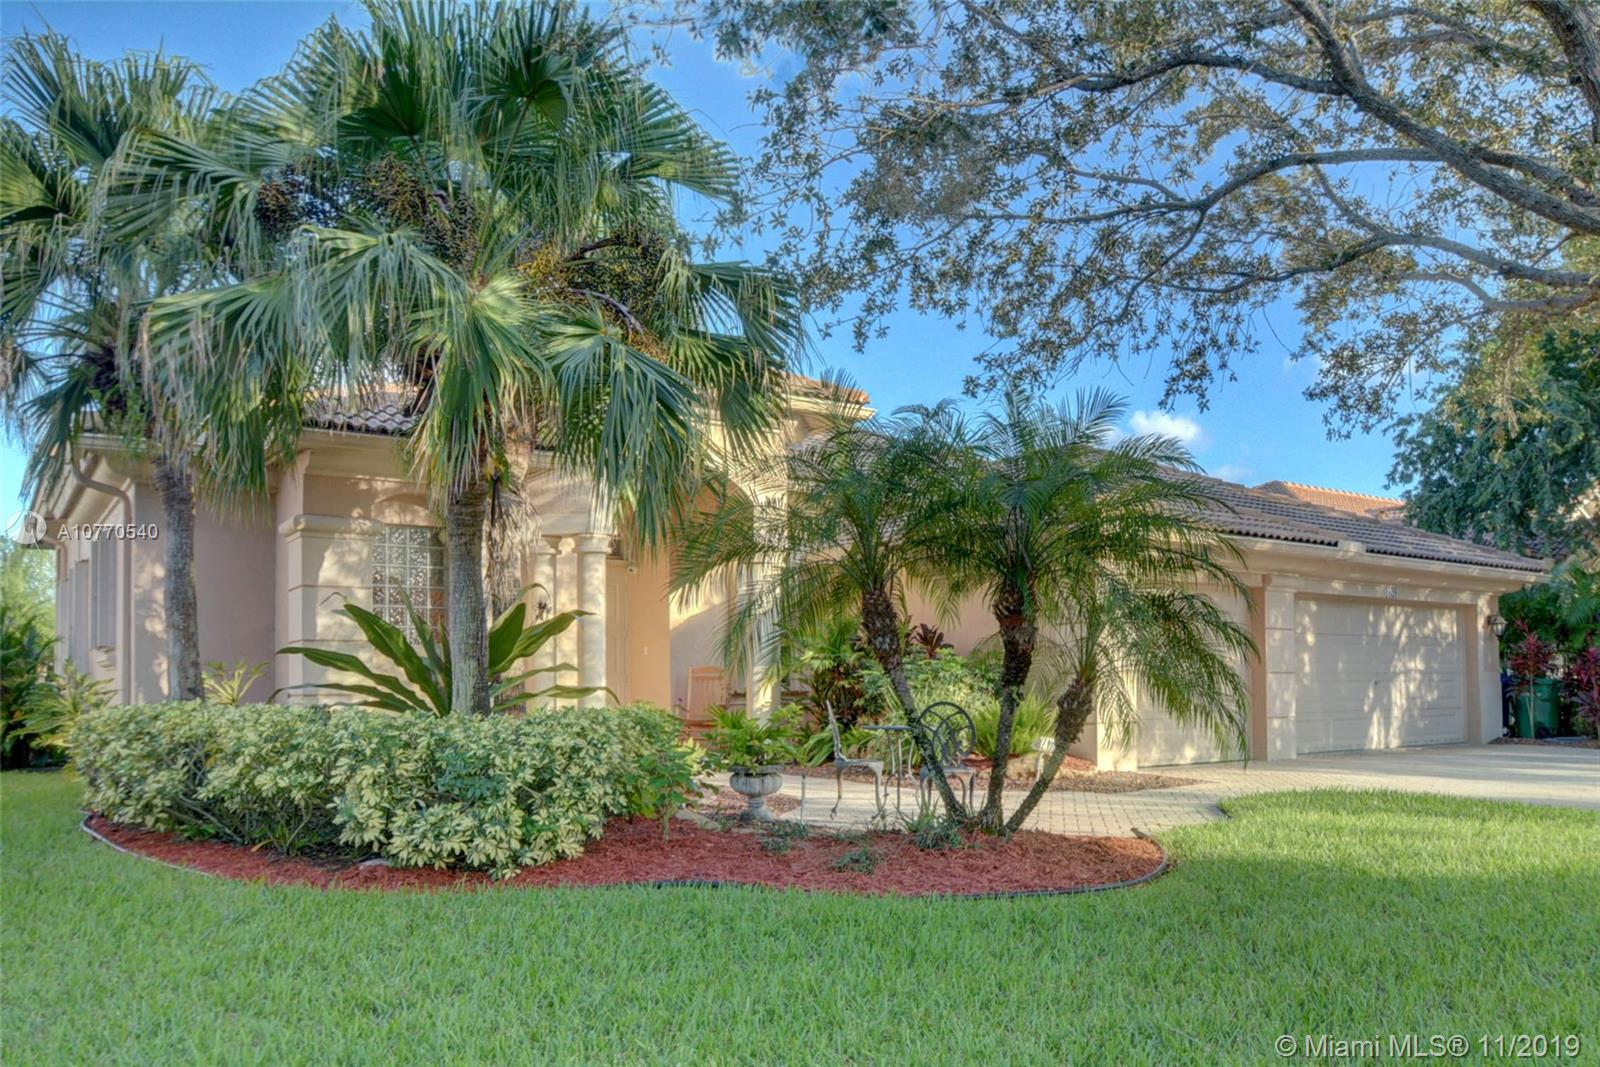 Listing A10770540 - Large Photo # 3